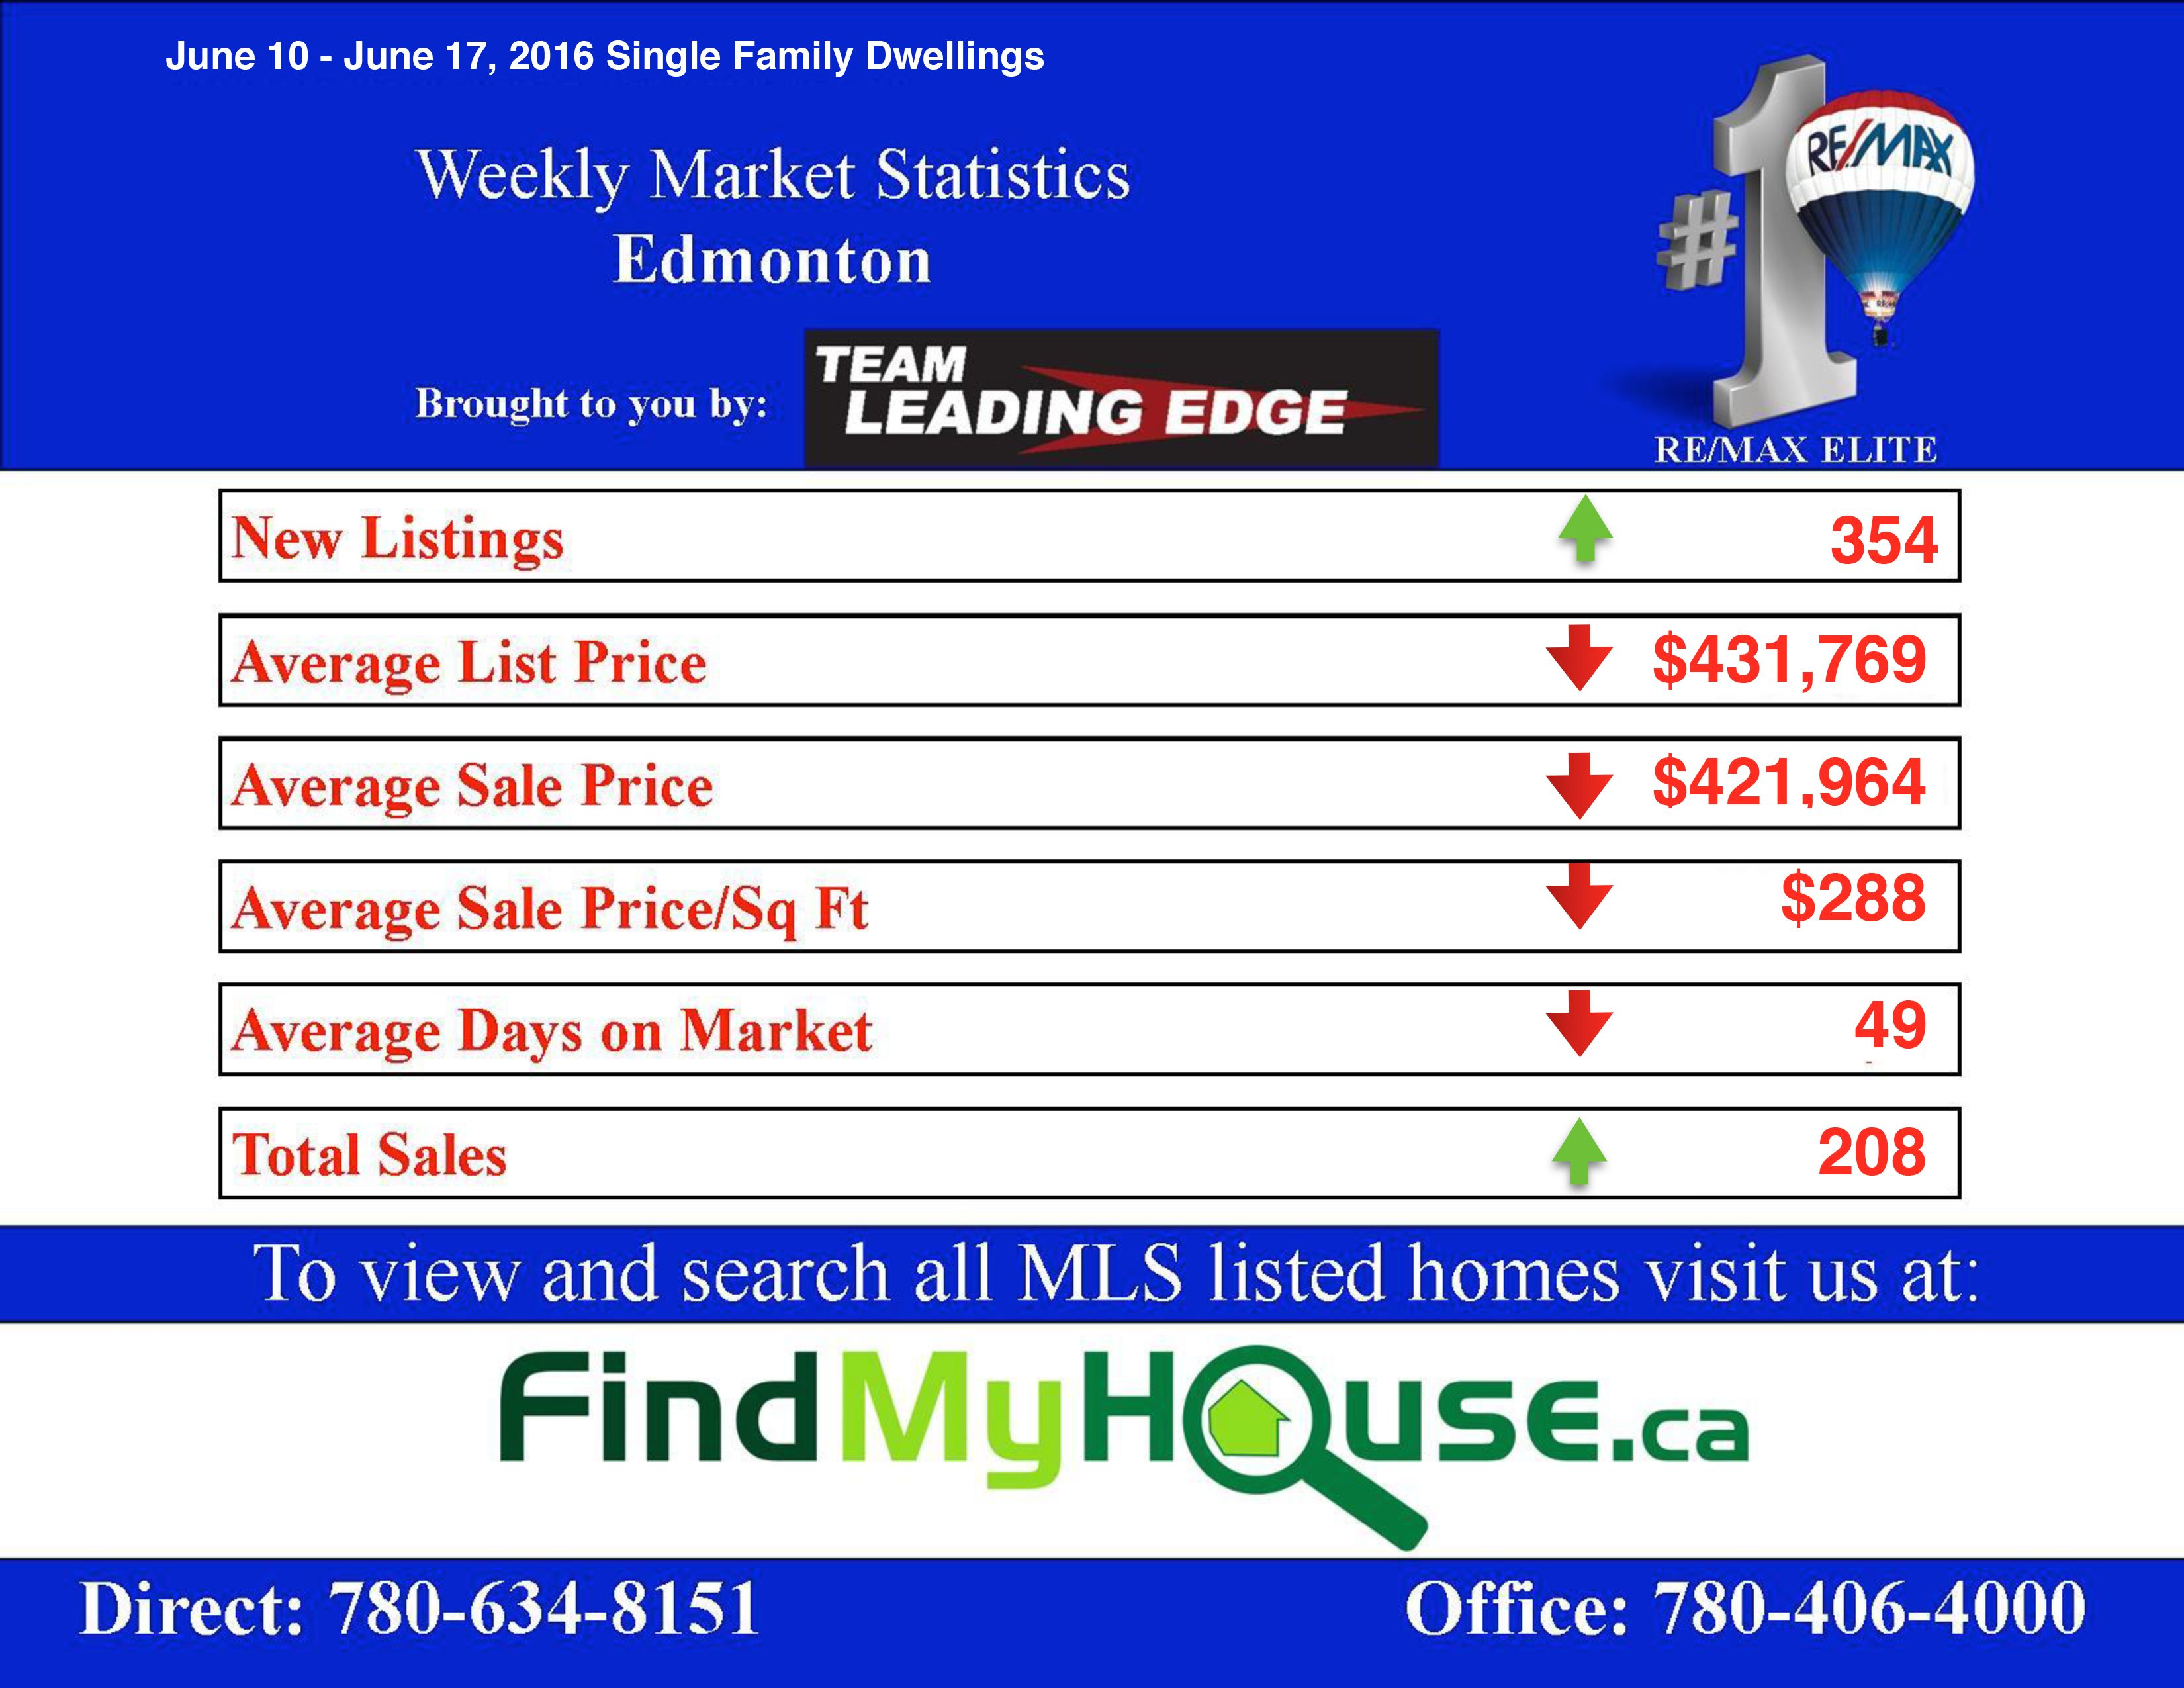 edmonton market update real estate june 10 - 17 2016